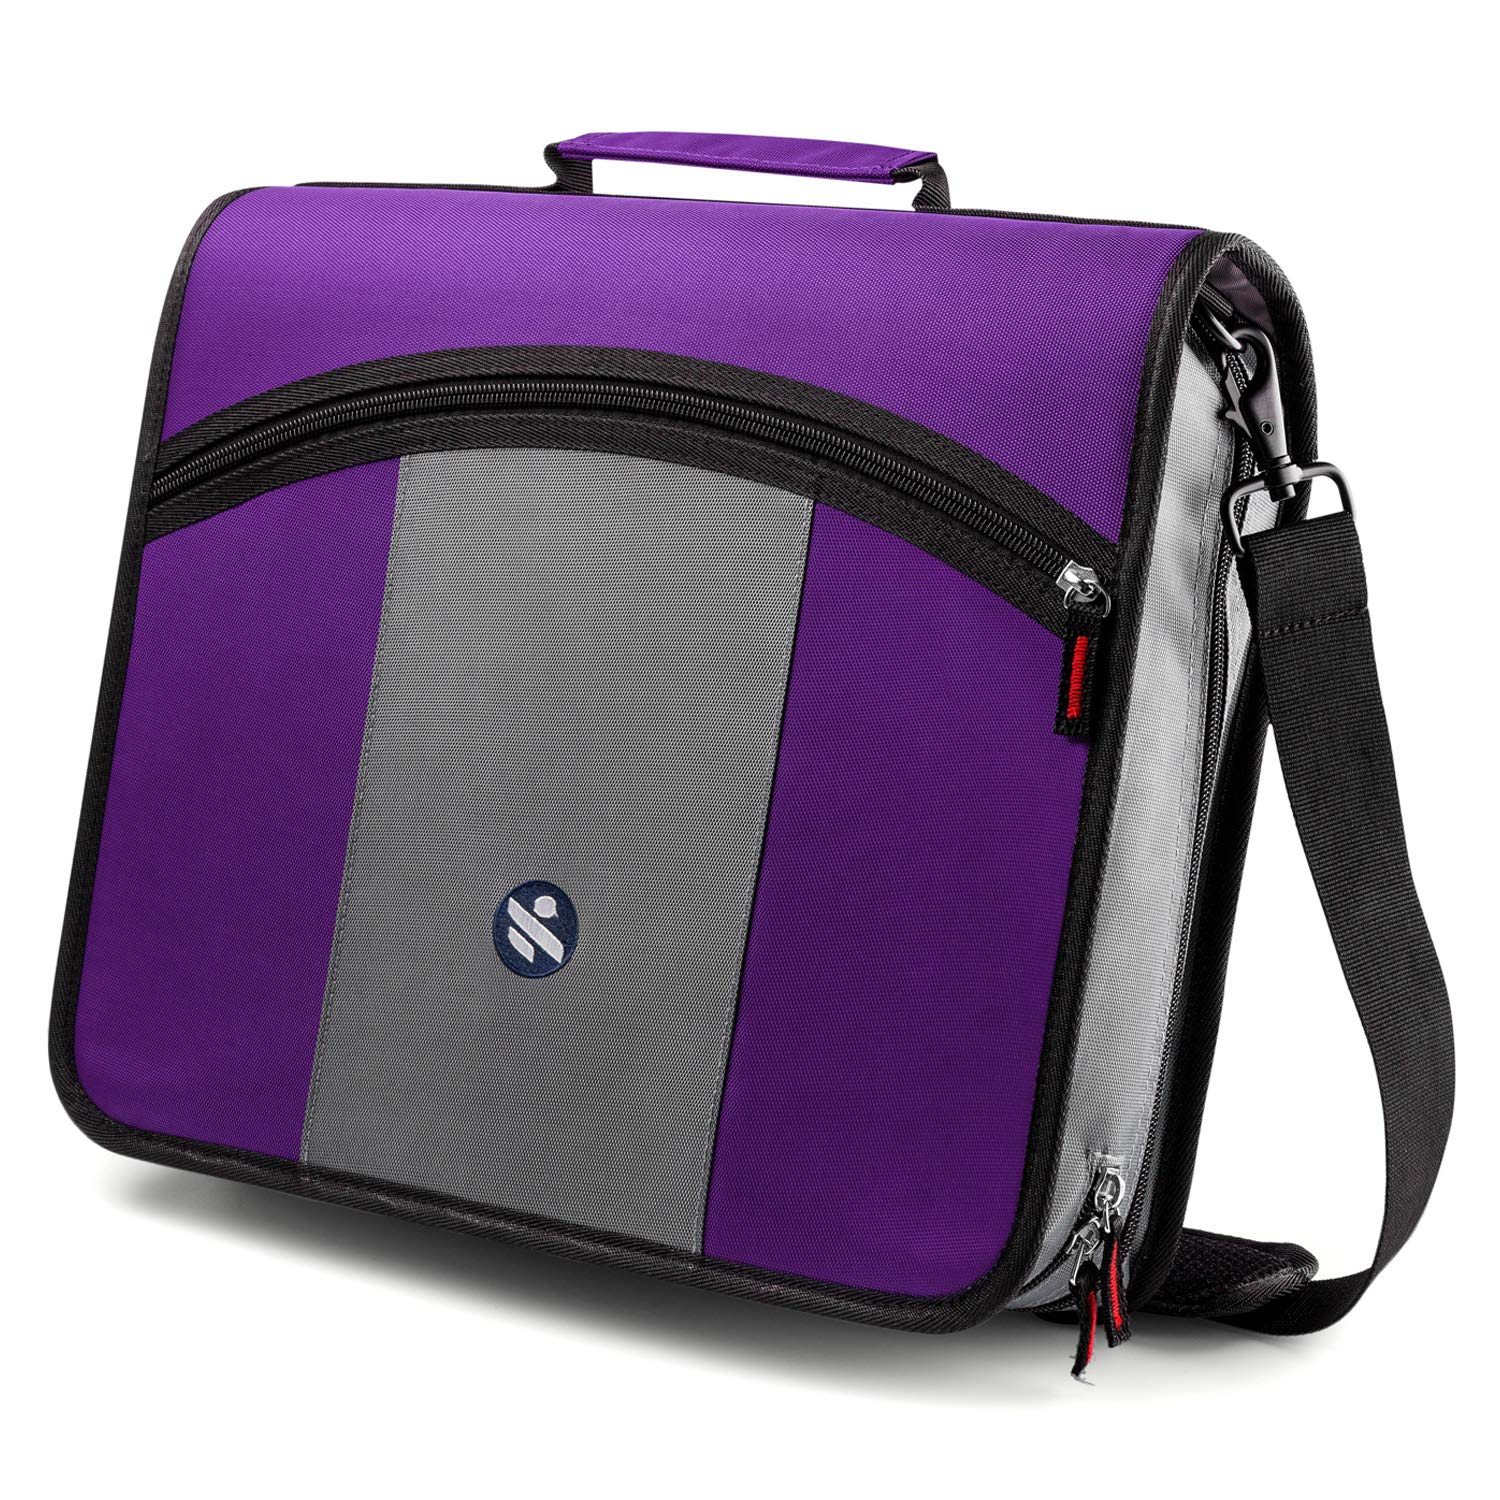 Round Ring 3-Inch Zipper Binder, Designed with Expanding Files and Handle, Shoulder Strap Included, Purple by Kinbashi